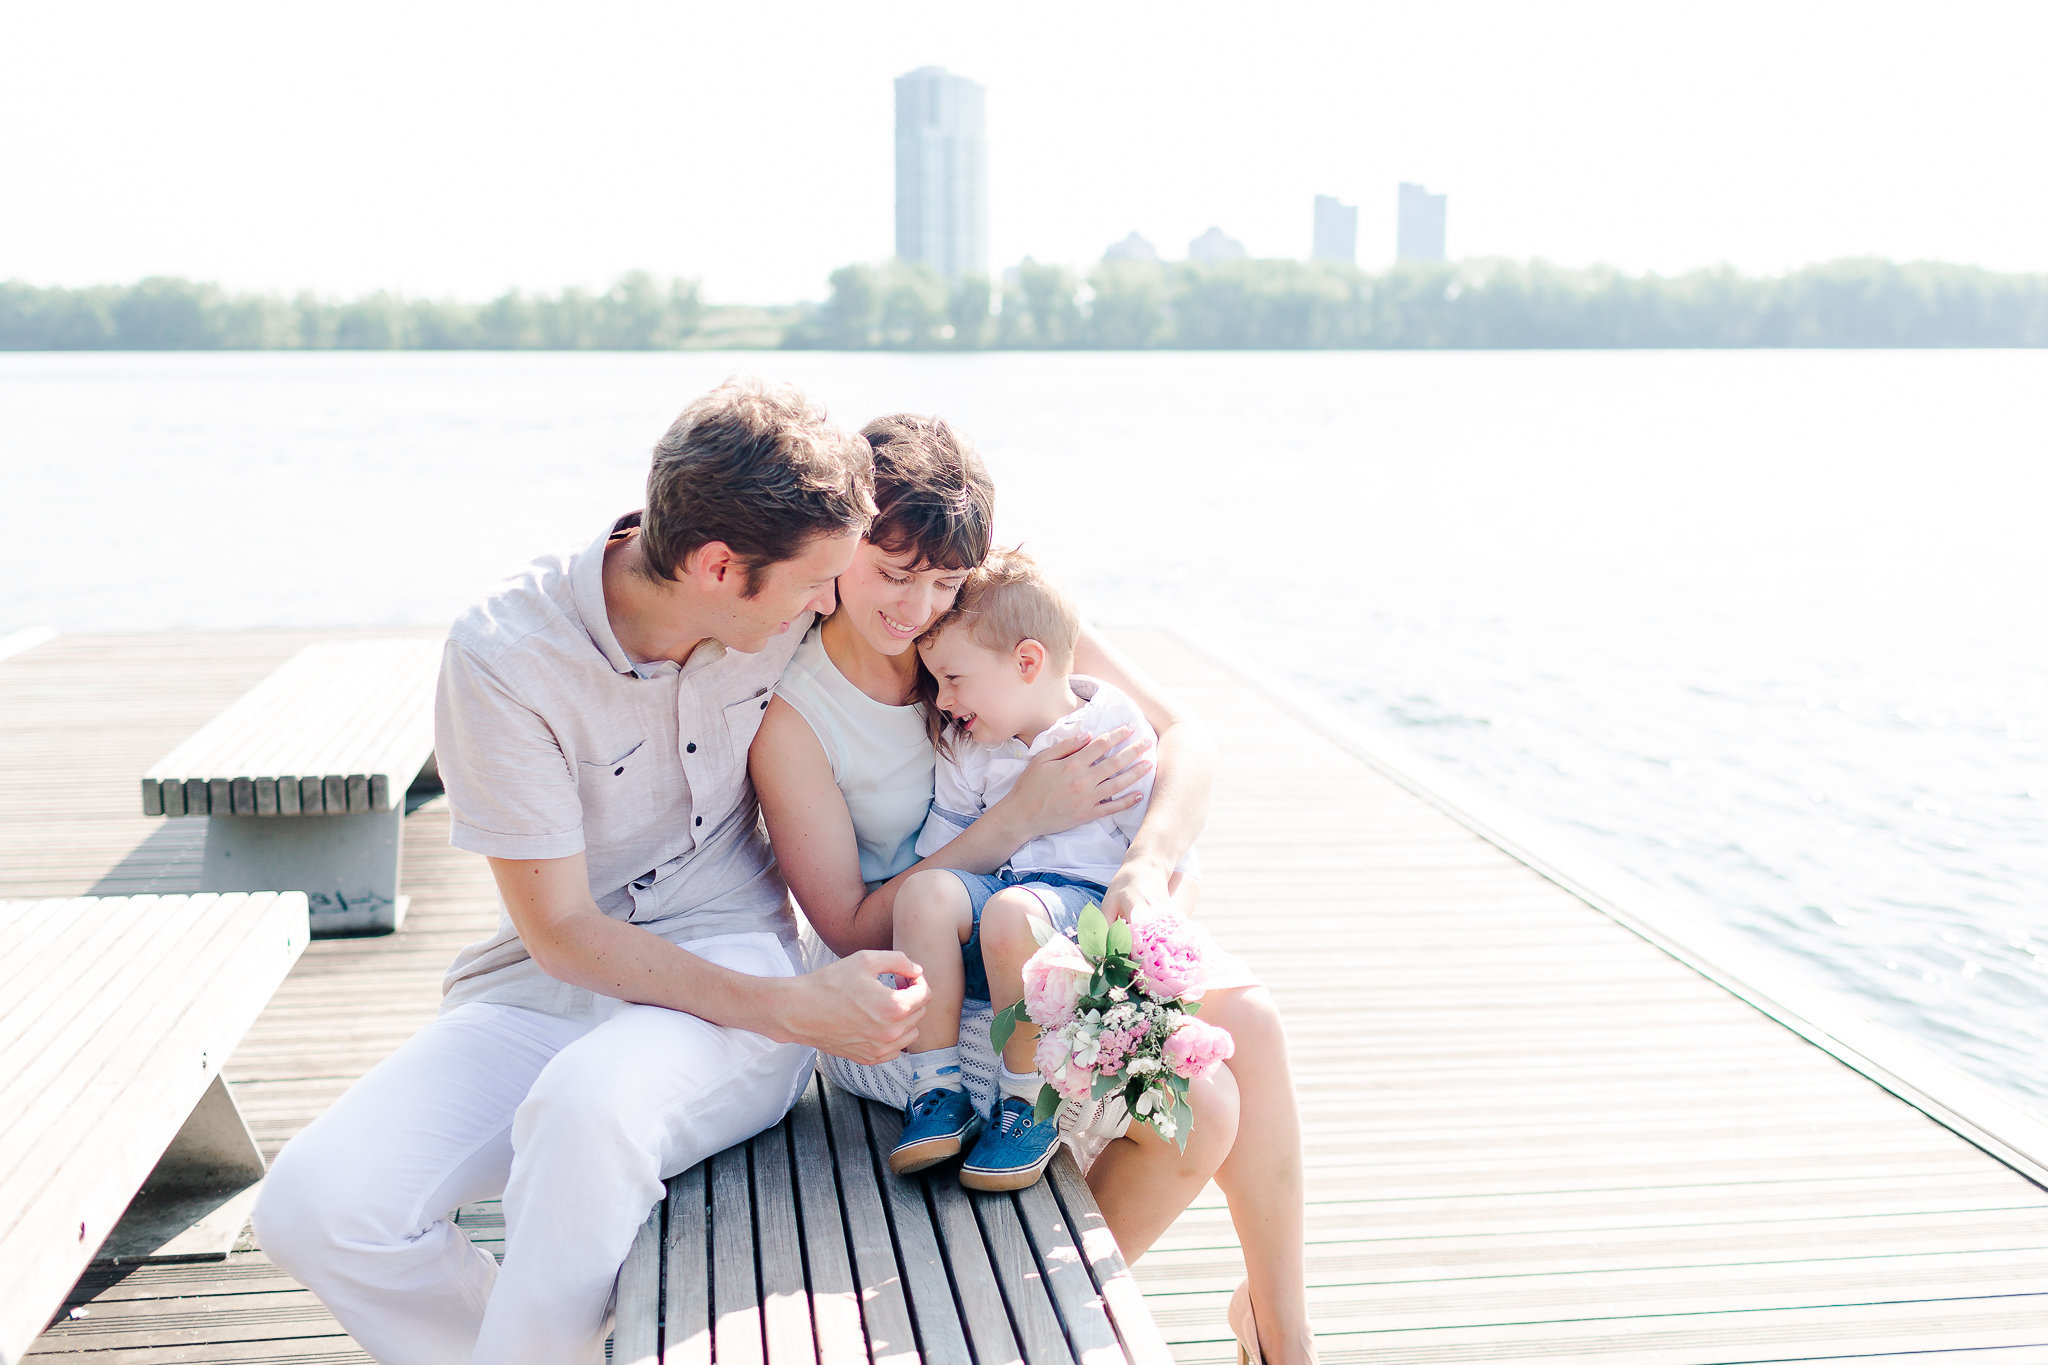 photographe-famille-montreal-lisa-renault-photographie-family-photographer-waterfront-pictures-47